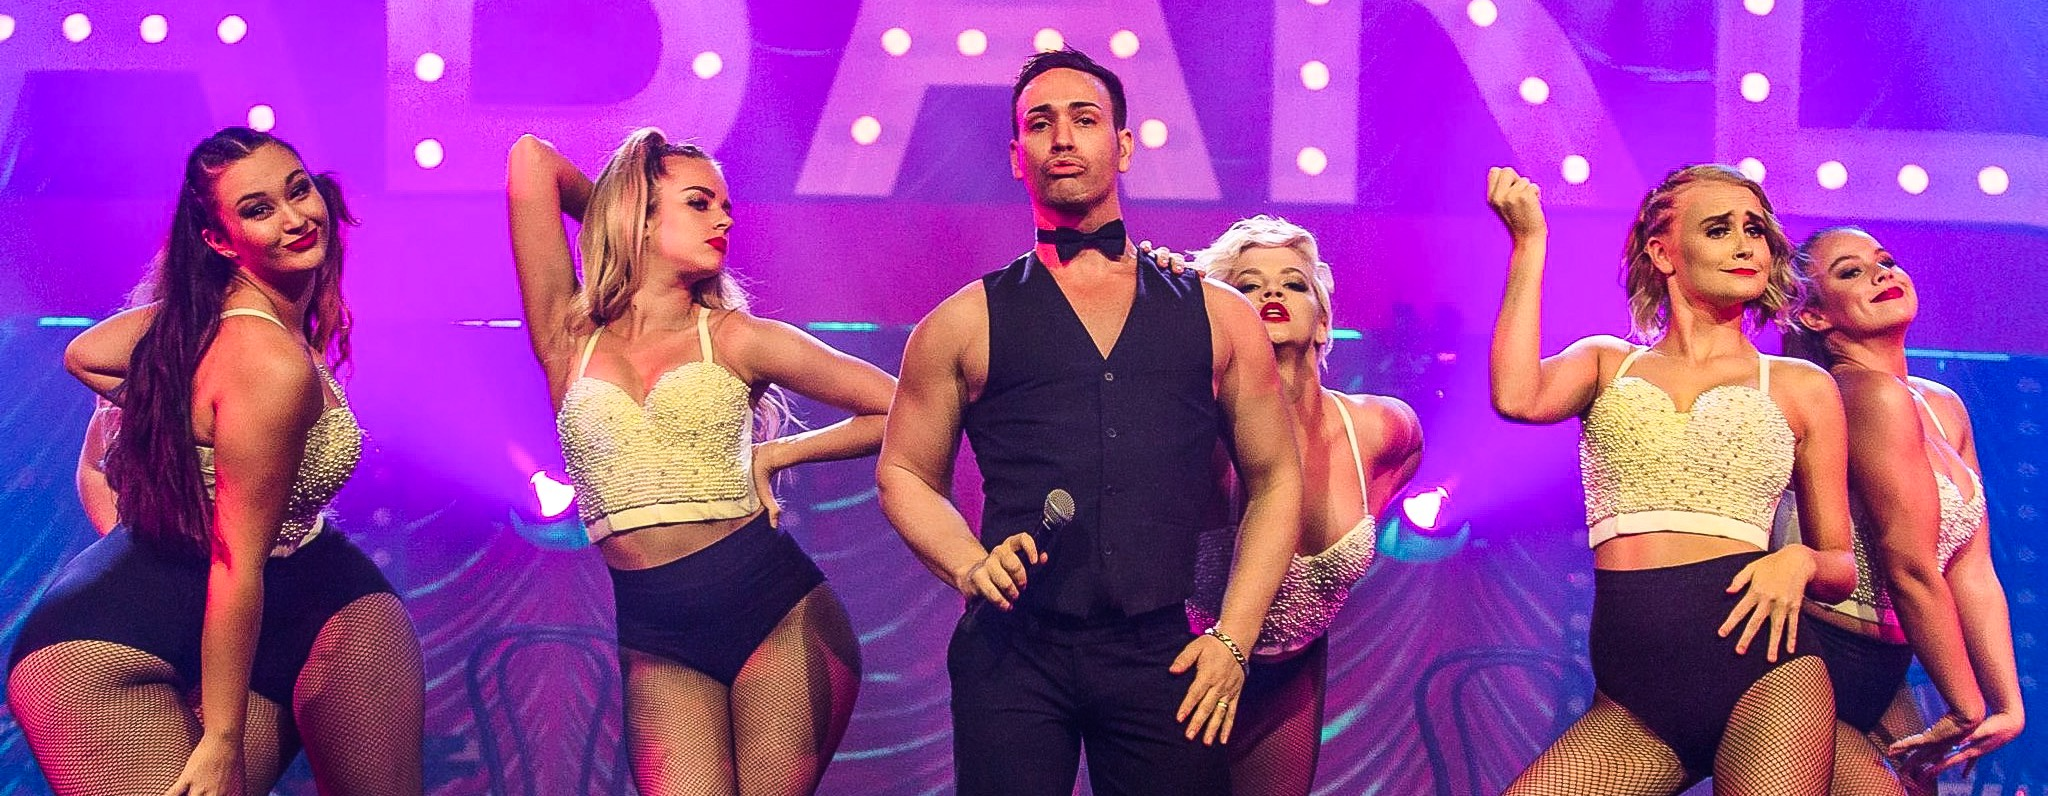 FEATURED SHOW  - from Ricky Martin to Cabaret or a Musical Theatre Showstopper. We will delivery a sensory overload to take your Event to the next level ; lights, camera, dances, costumes action!!